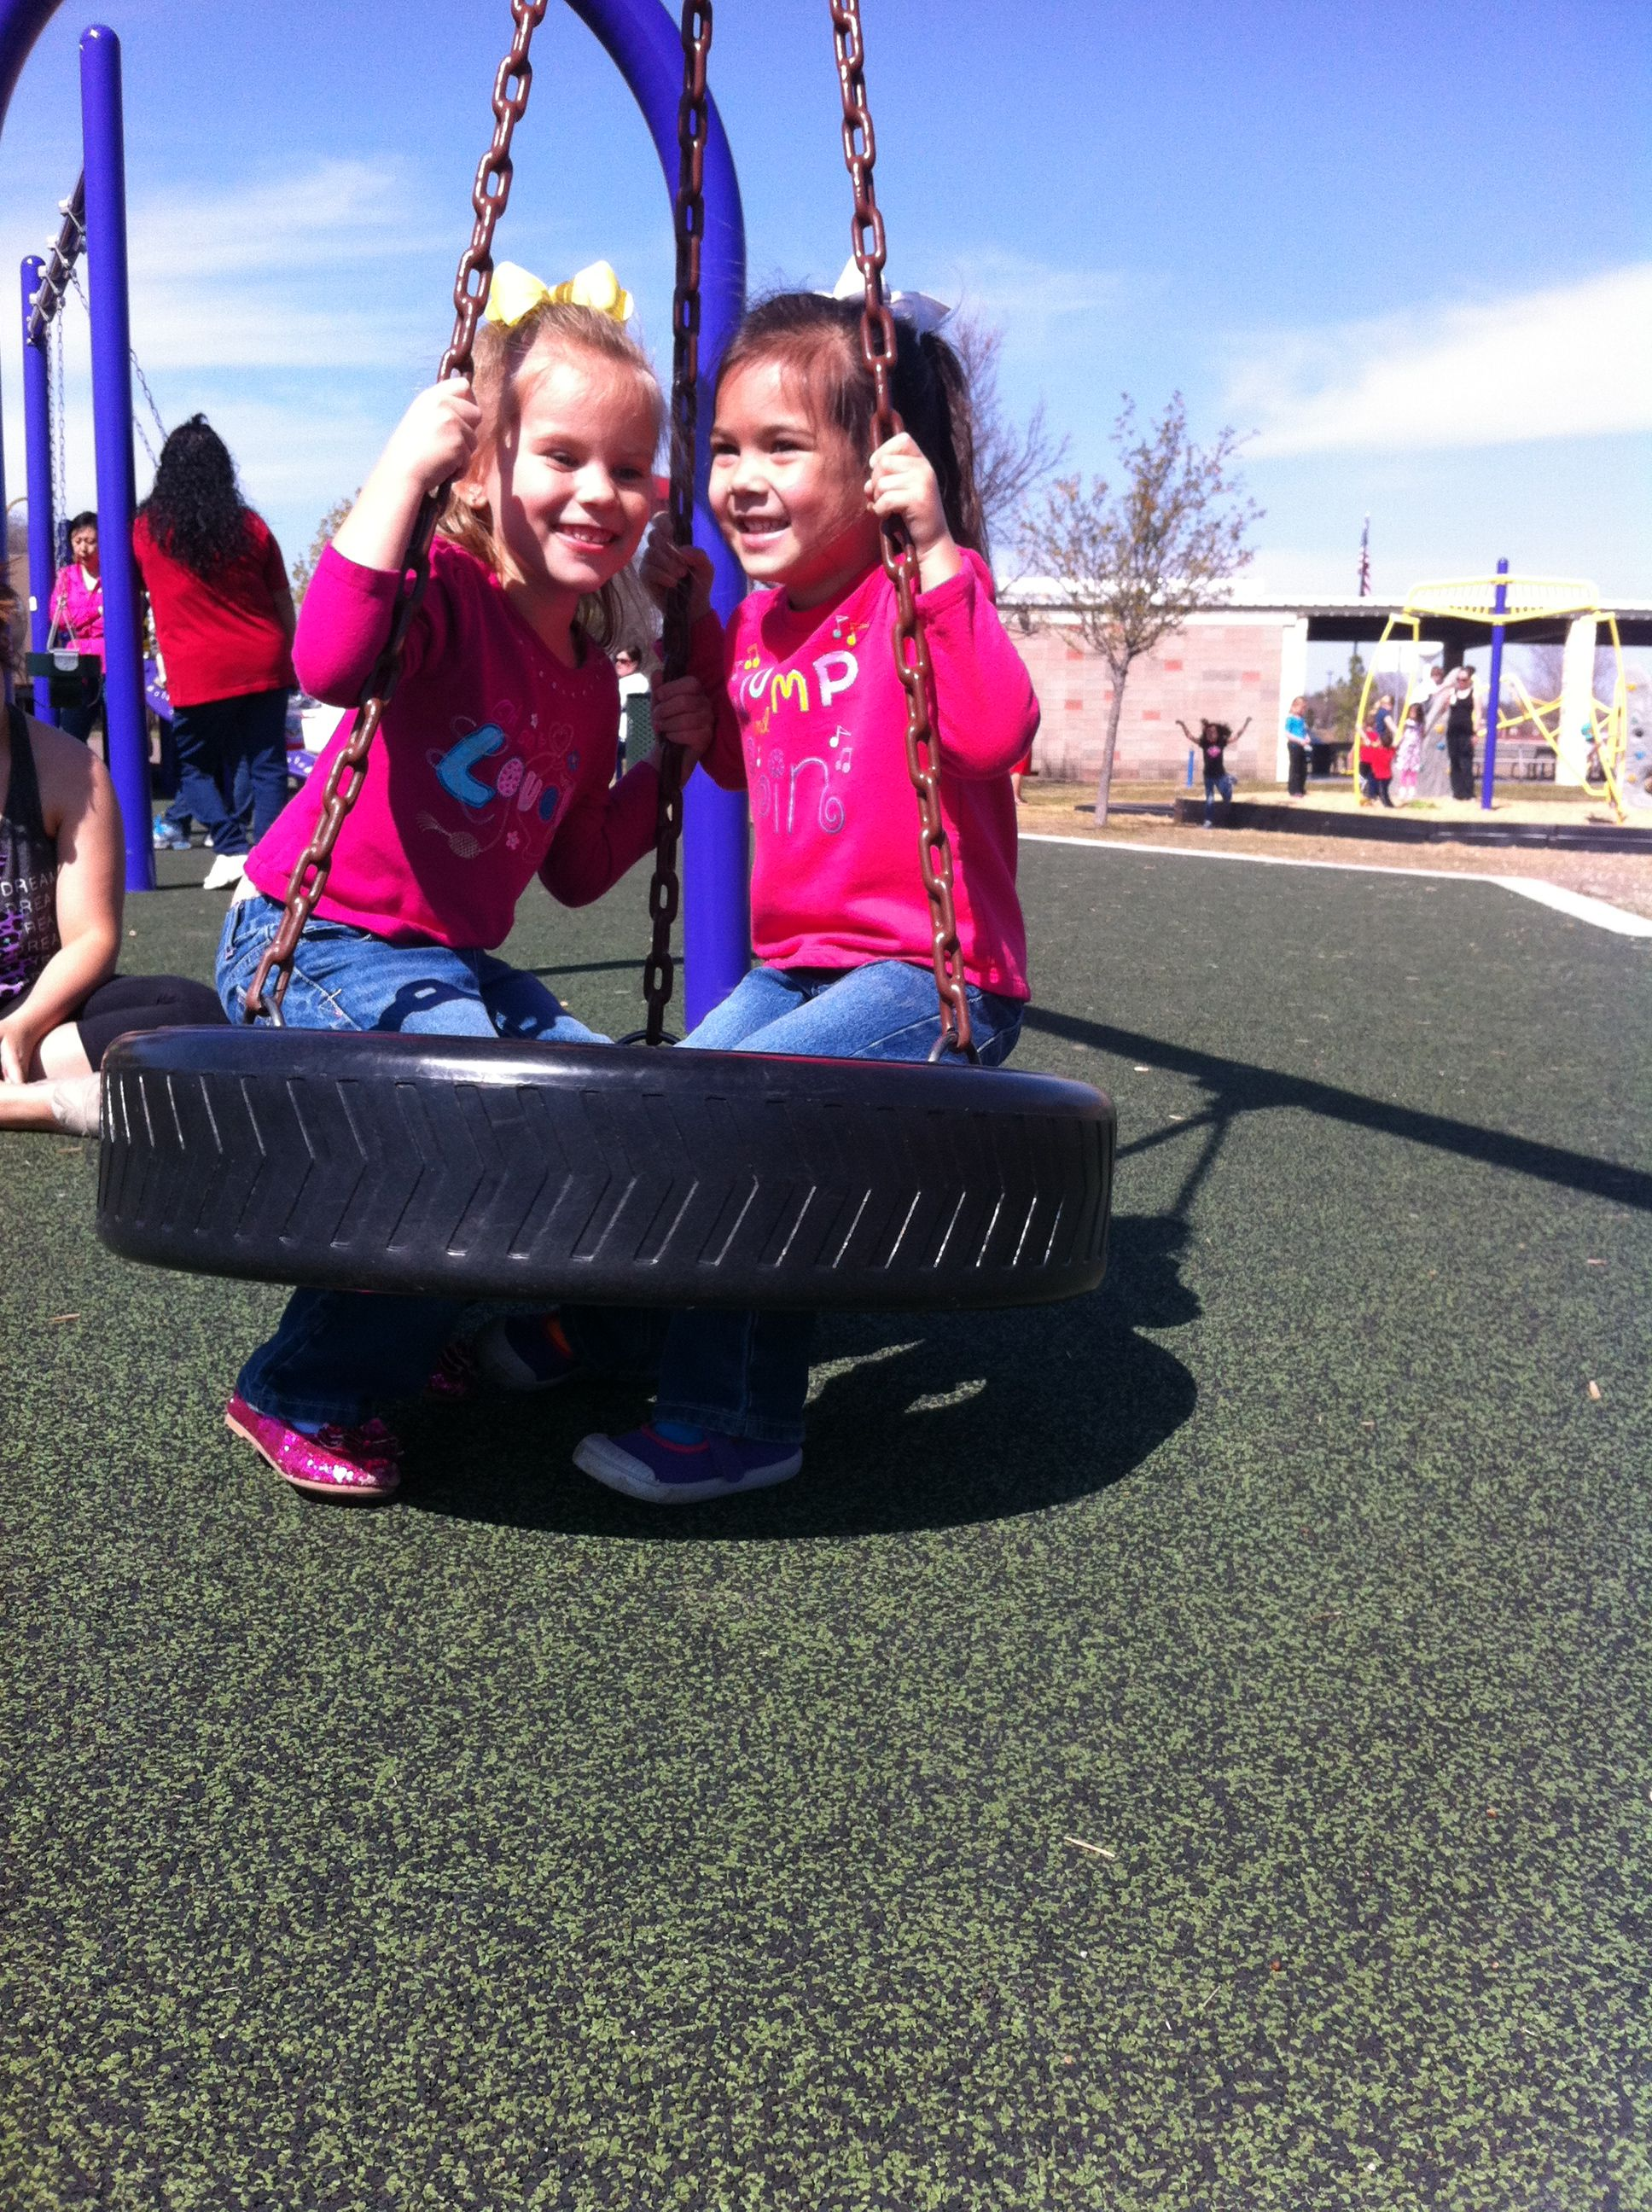 Park day with my twinkies!